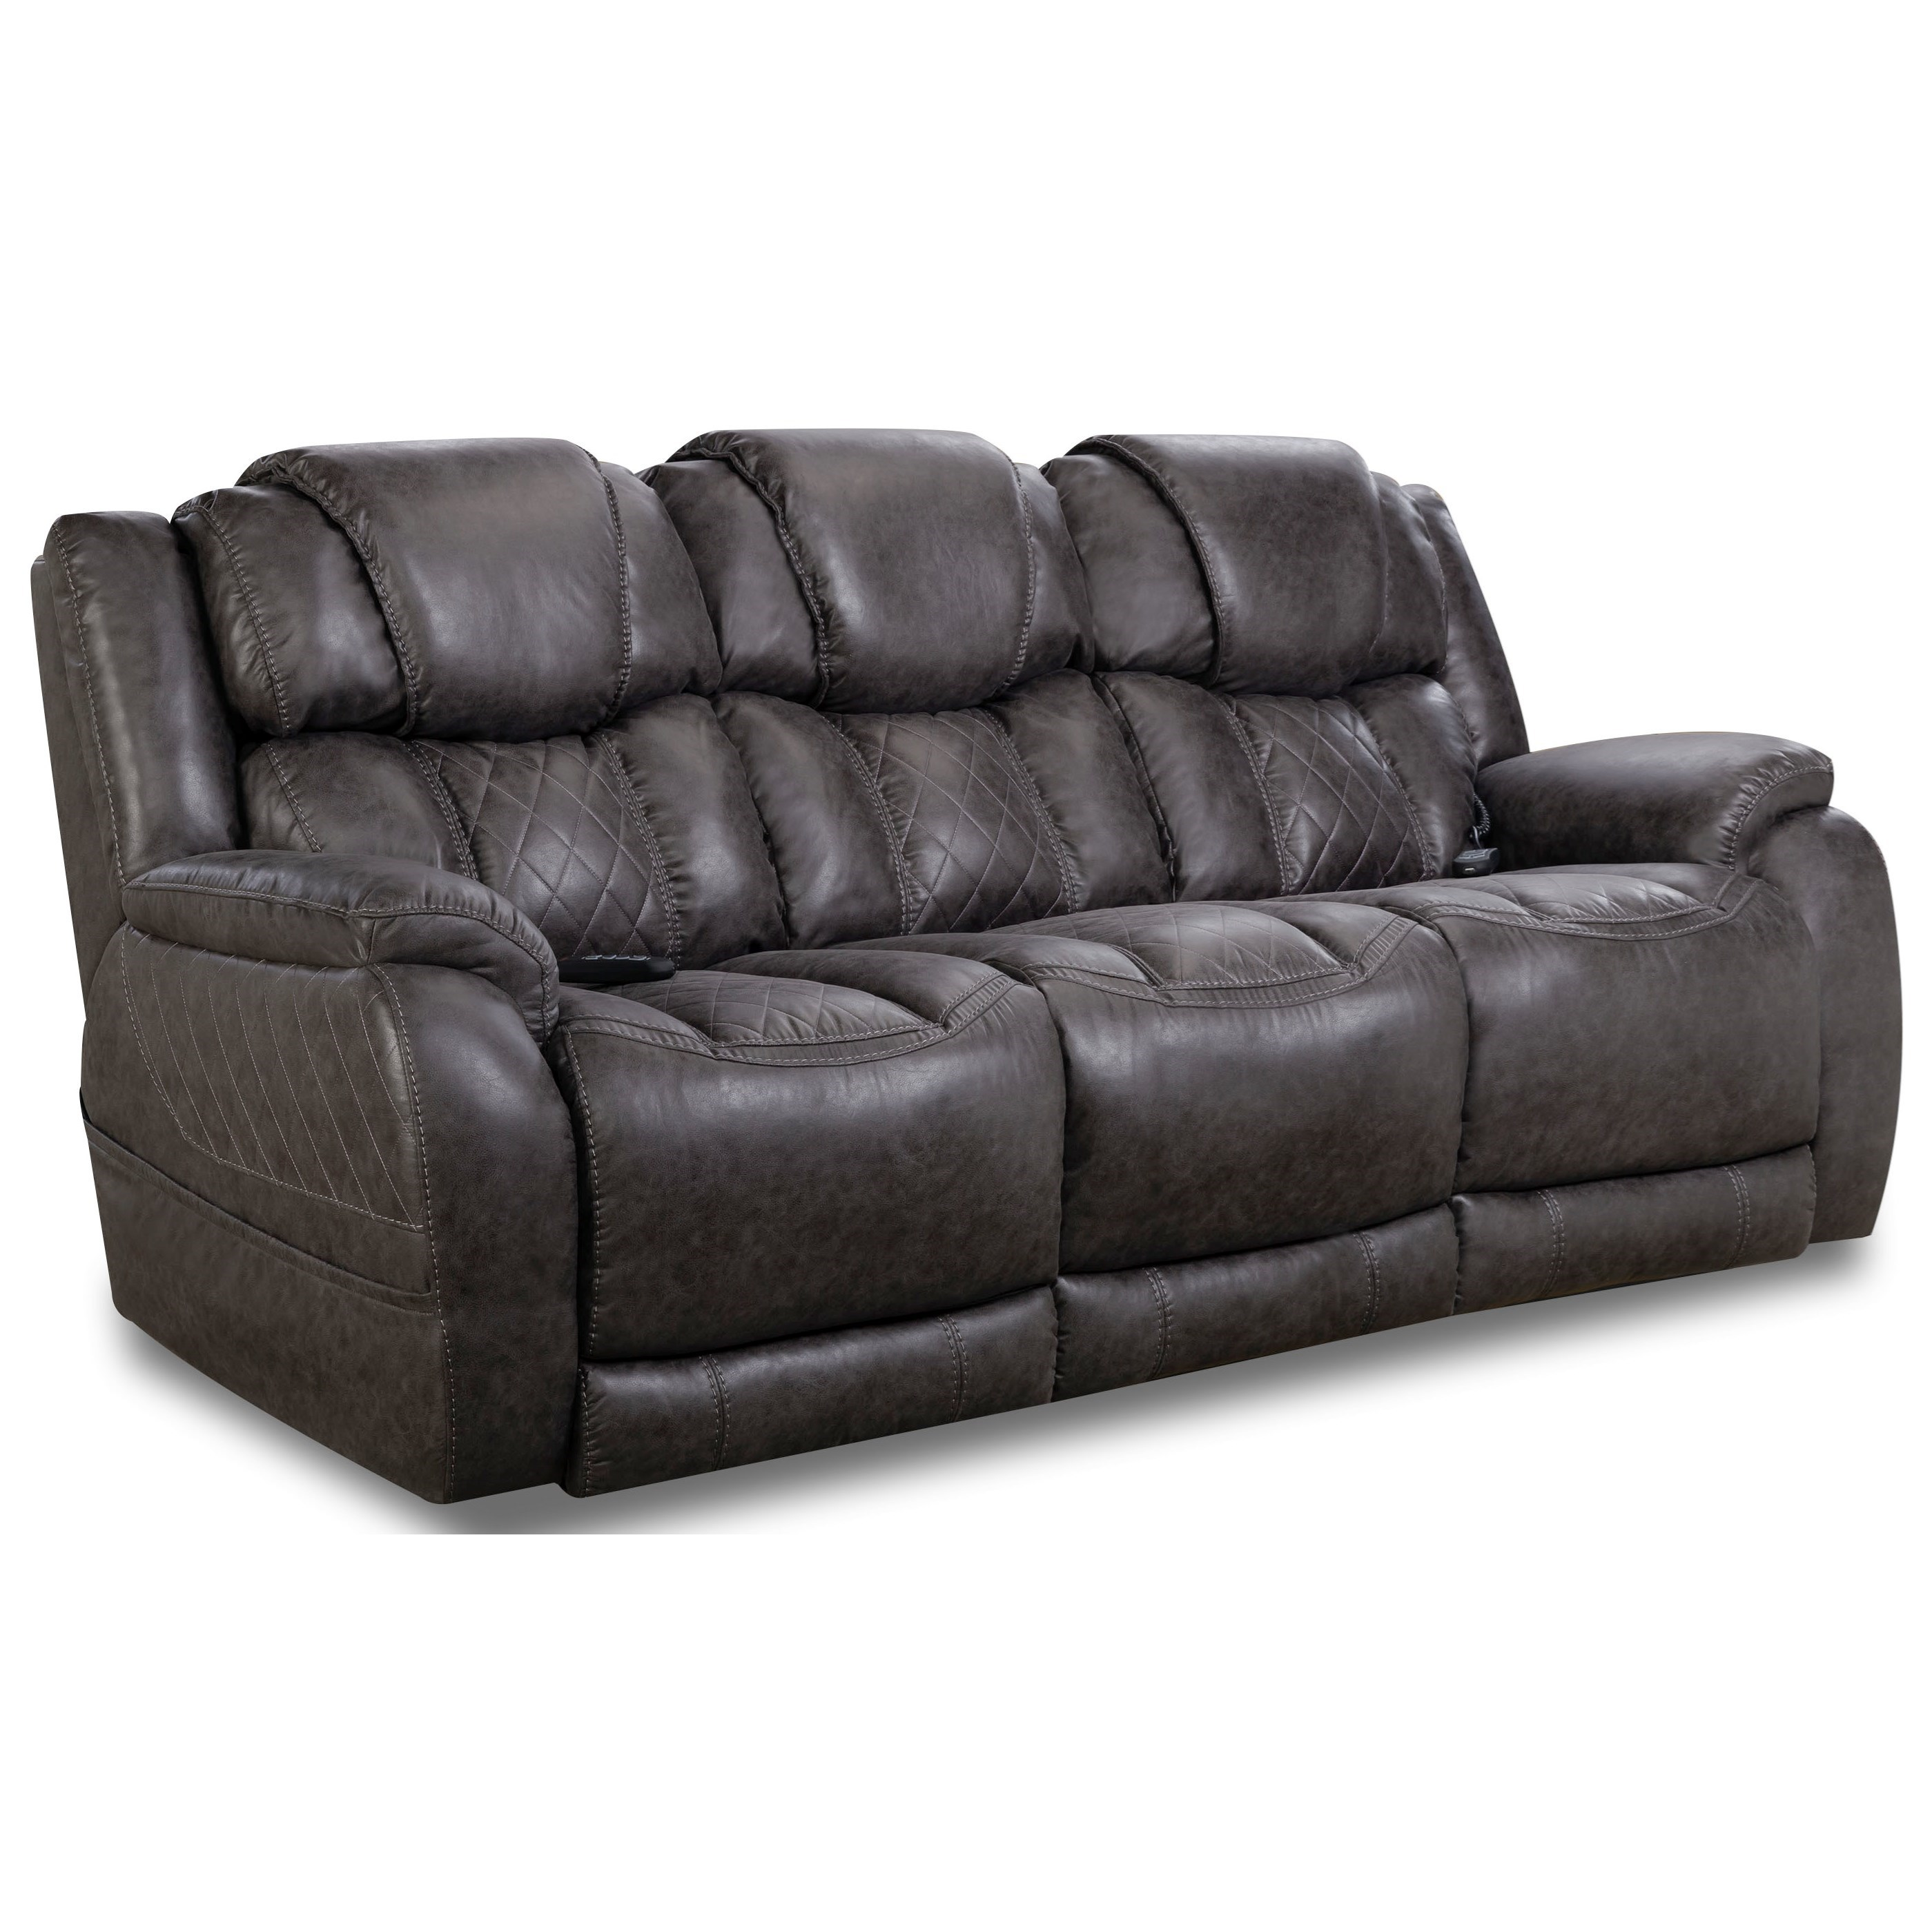 174 Double Reclining Power Sofa by HomeStretch at Johnny Janosik